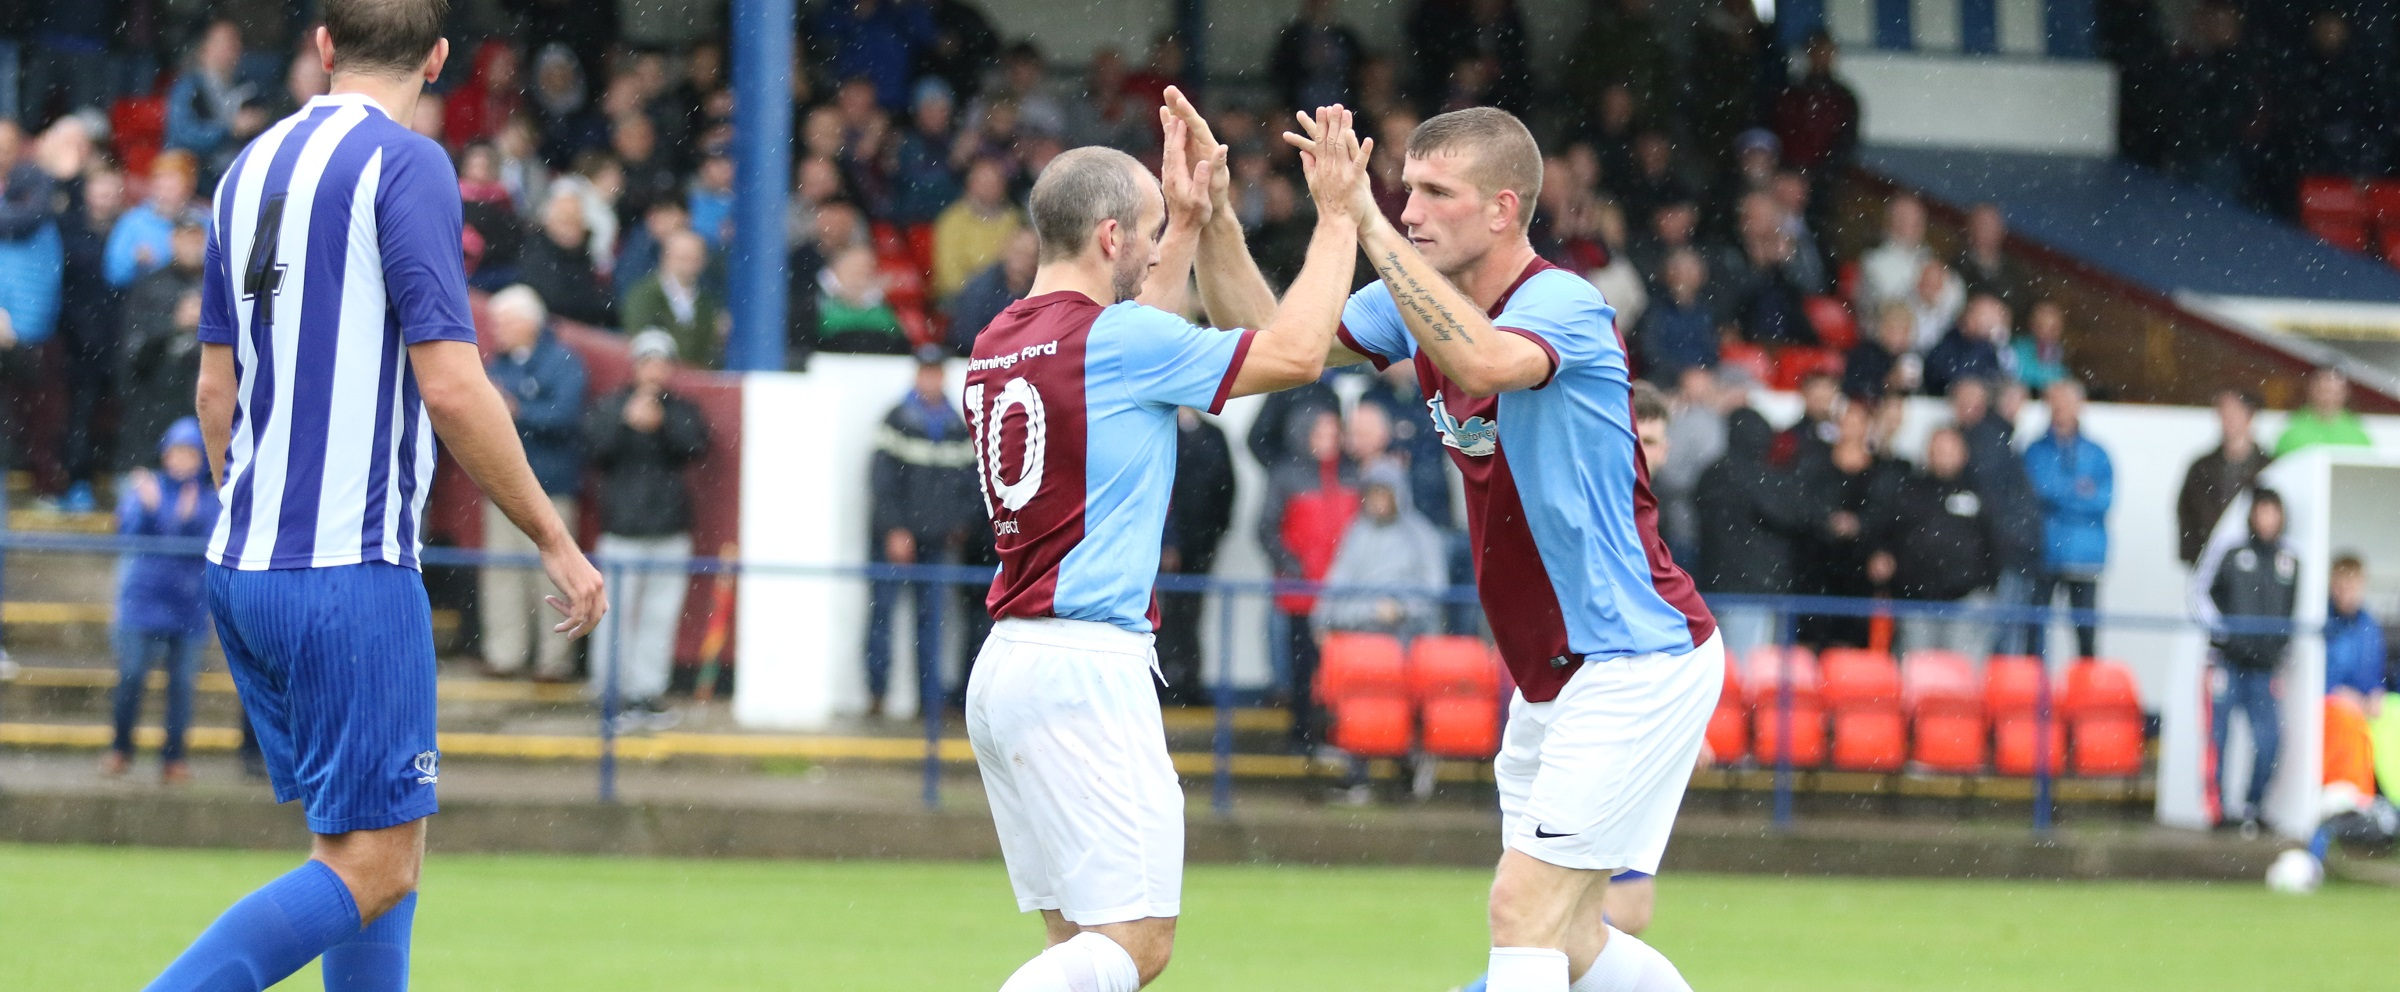 Whitley Bay 3-3 South Shields: Mariners concede last minute leveller